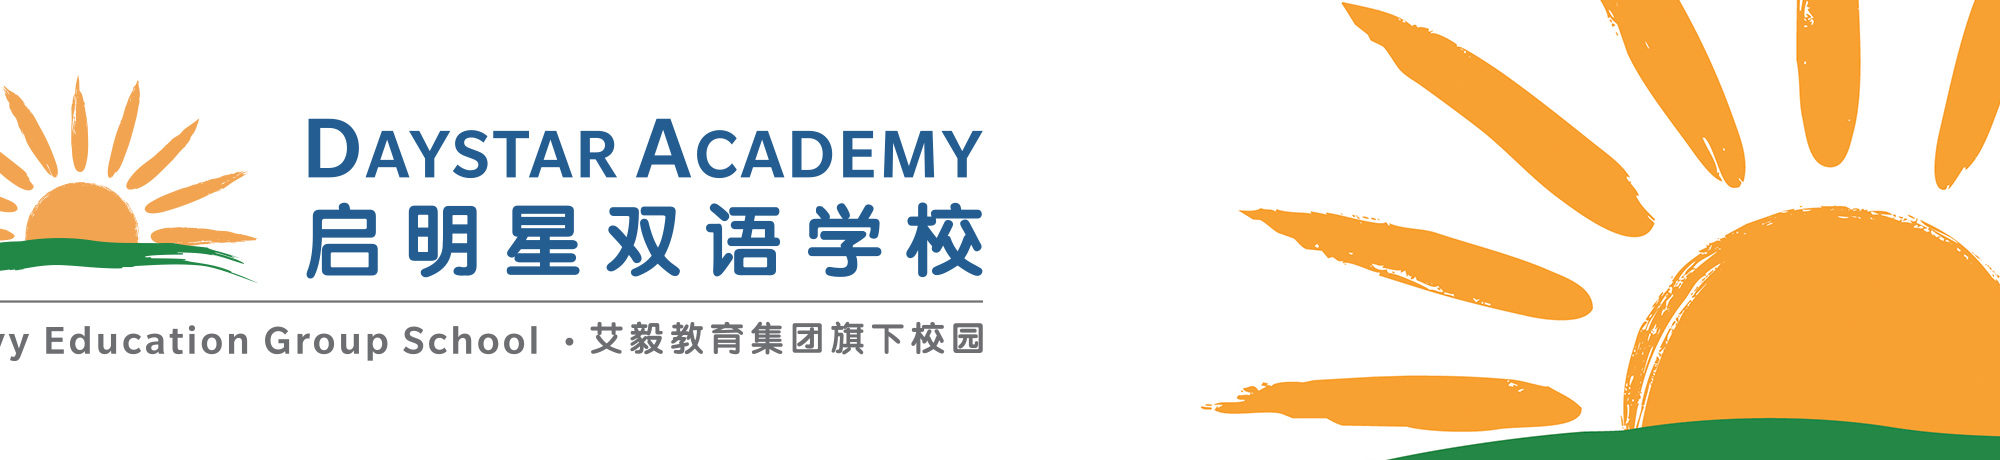 Wildfire Galleries - Daystar Academy, Beijing